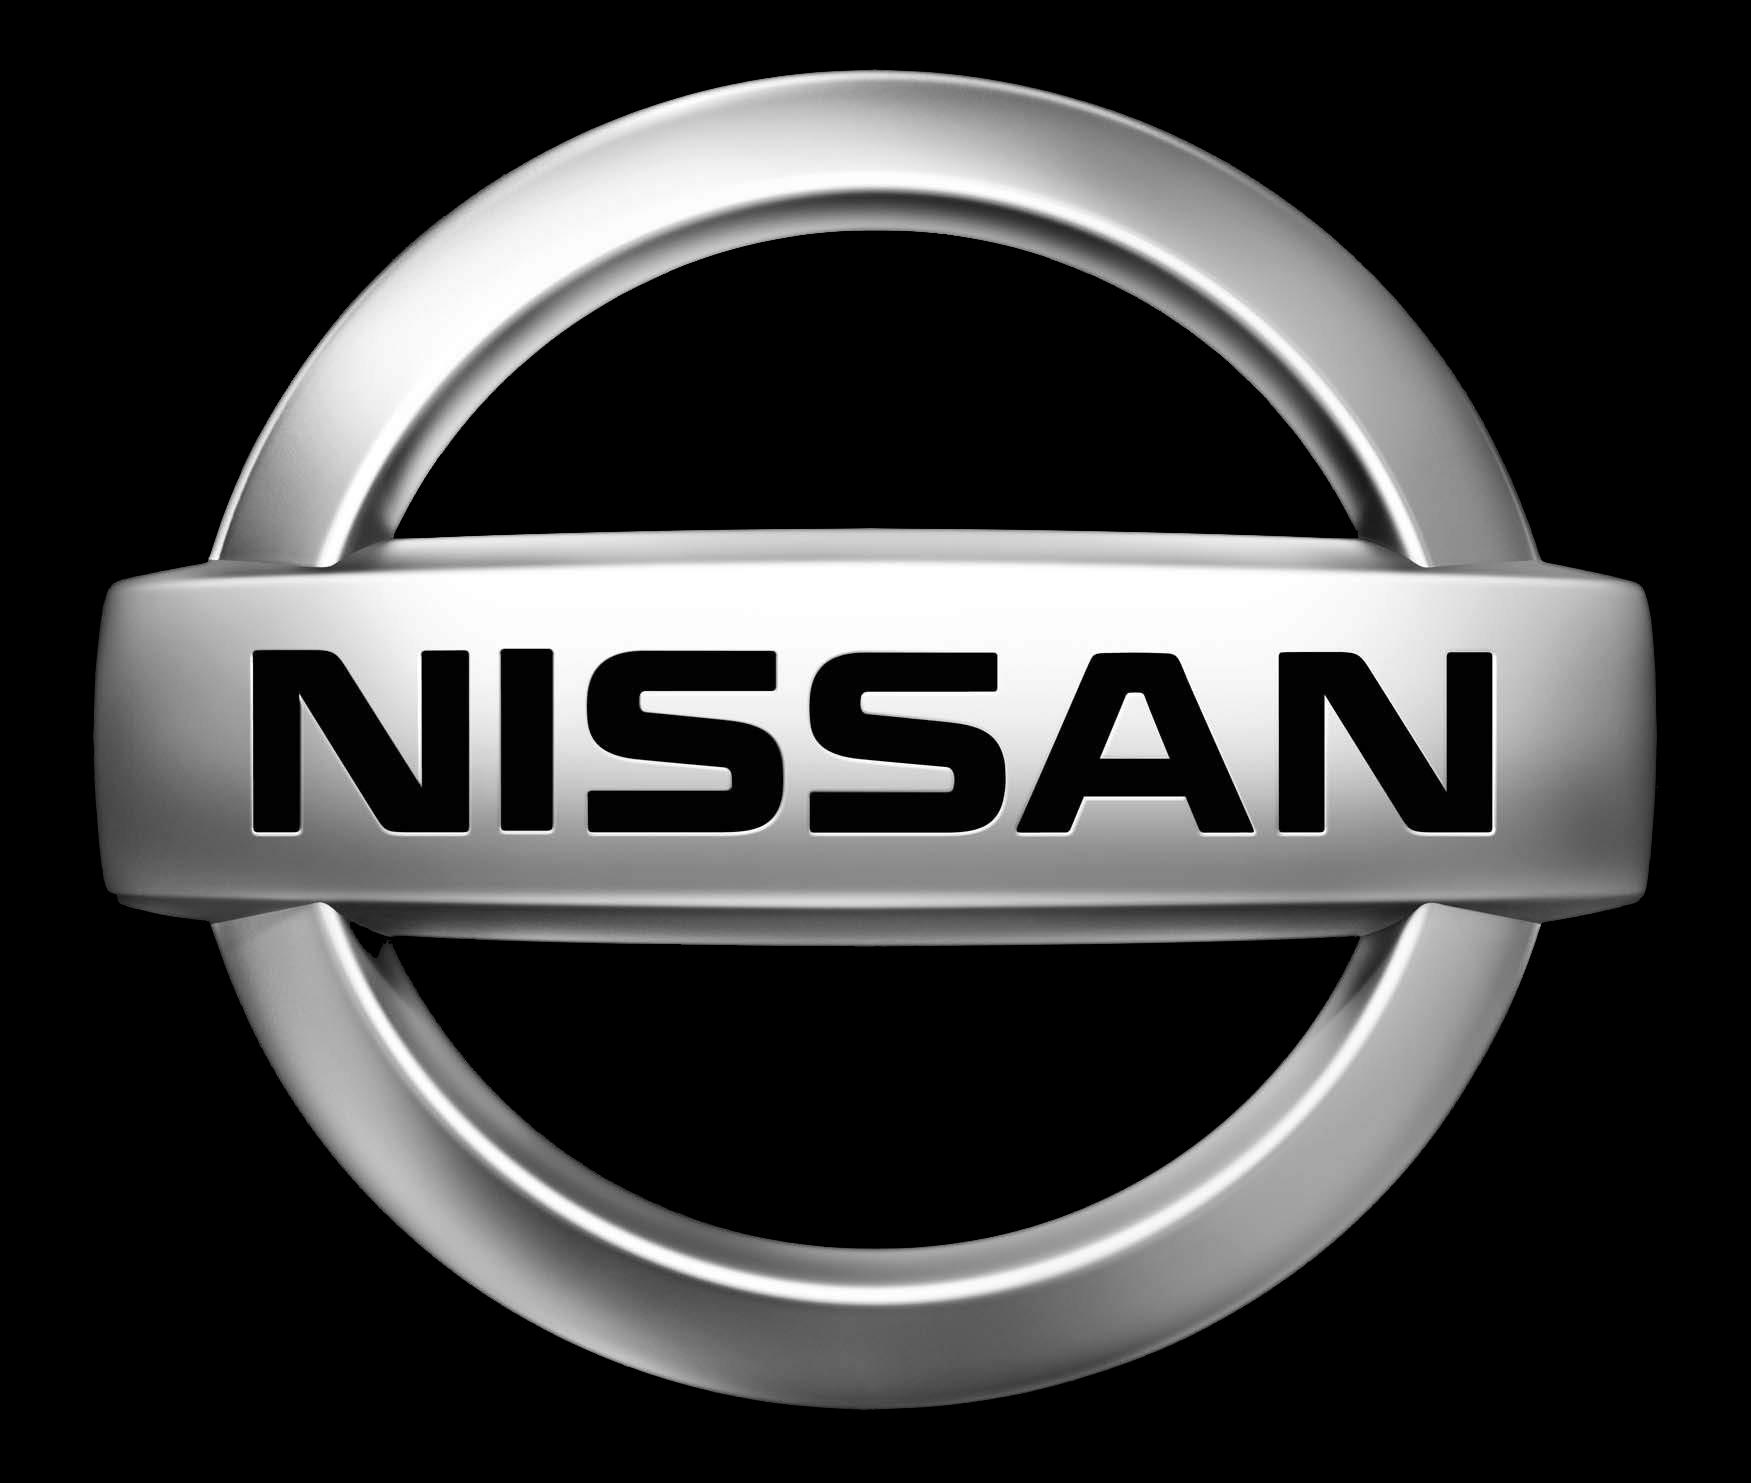 http://alfredojunior.files.wordpress.com/2011/03/nissan.jpg